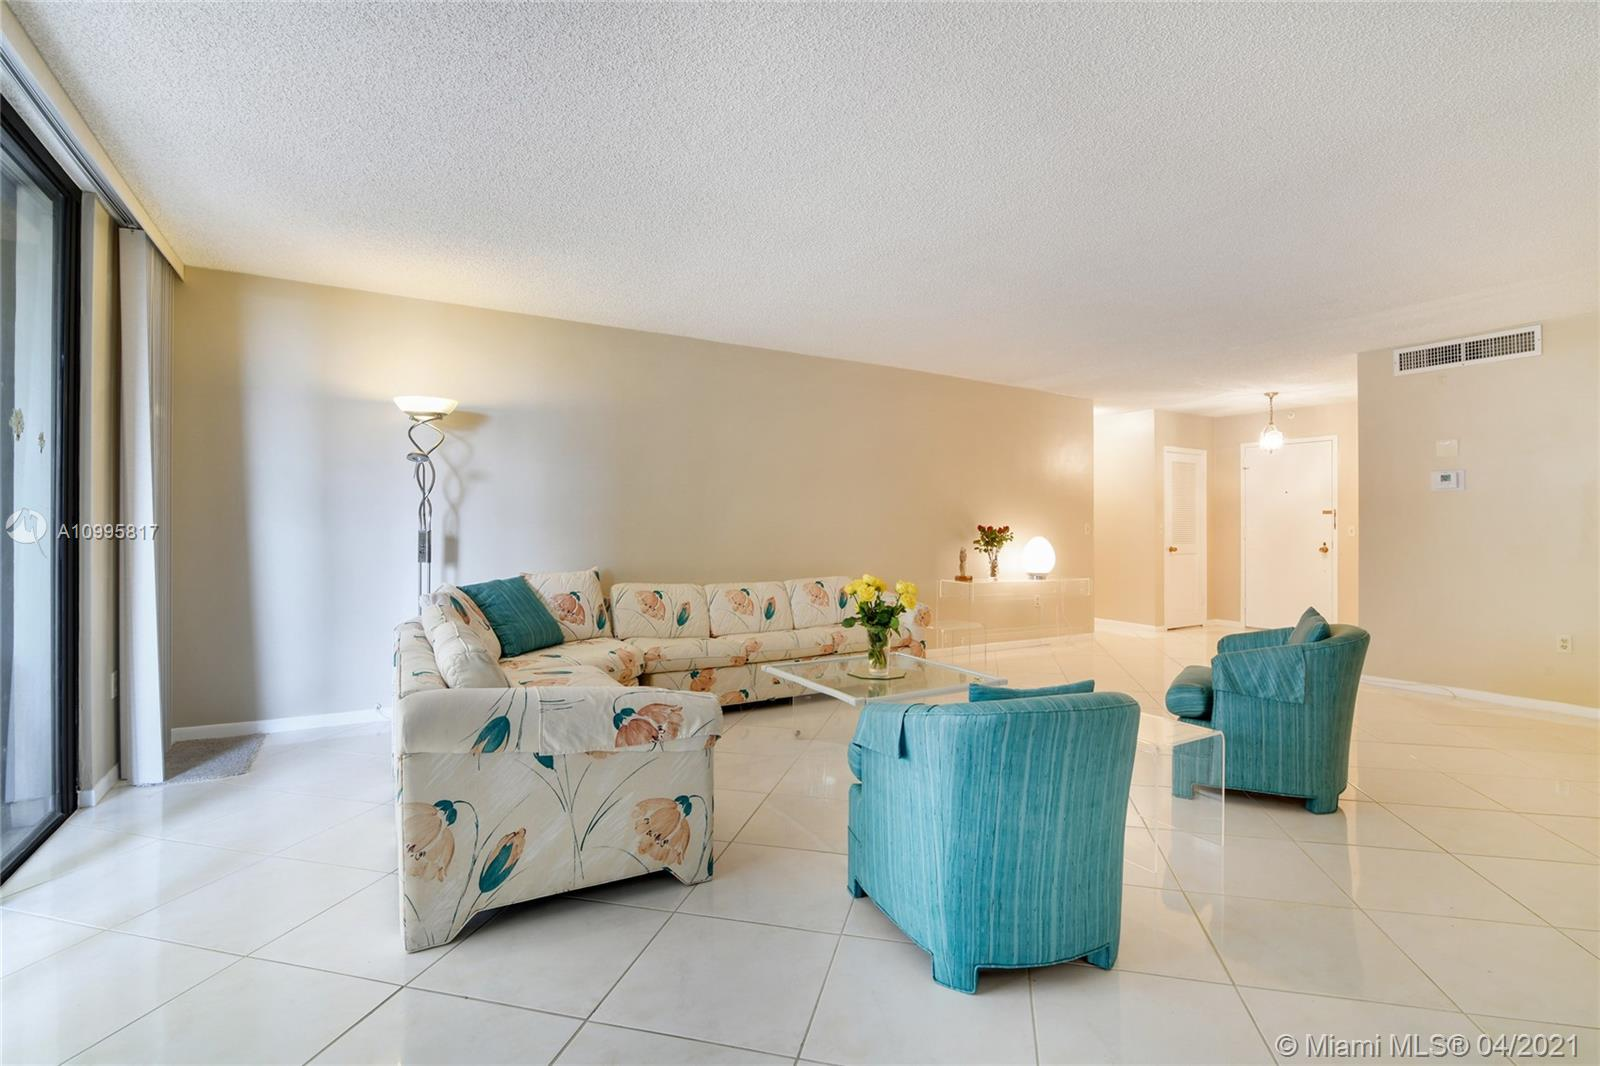 Photo of 9801 Collins Ave #5H, Bal Harbour, Florida, 33154 - Picture from the Entrance door